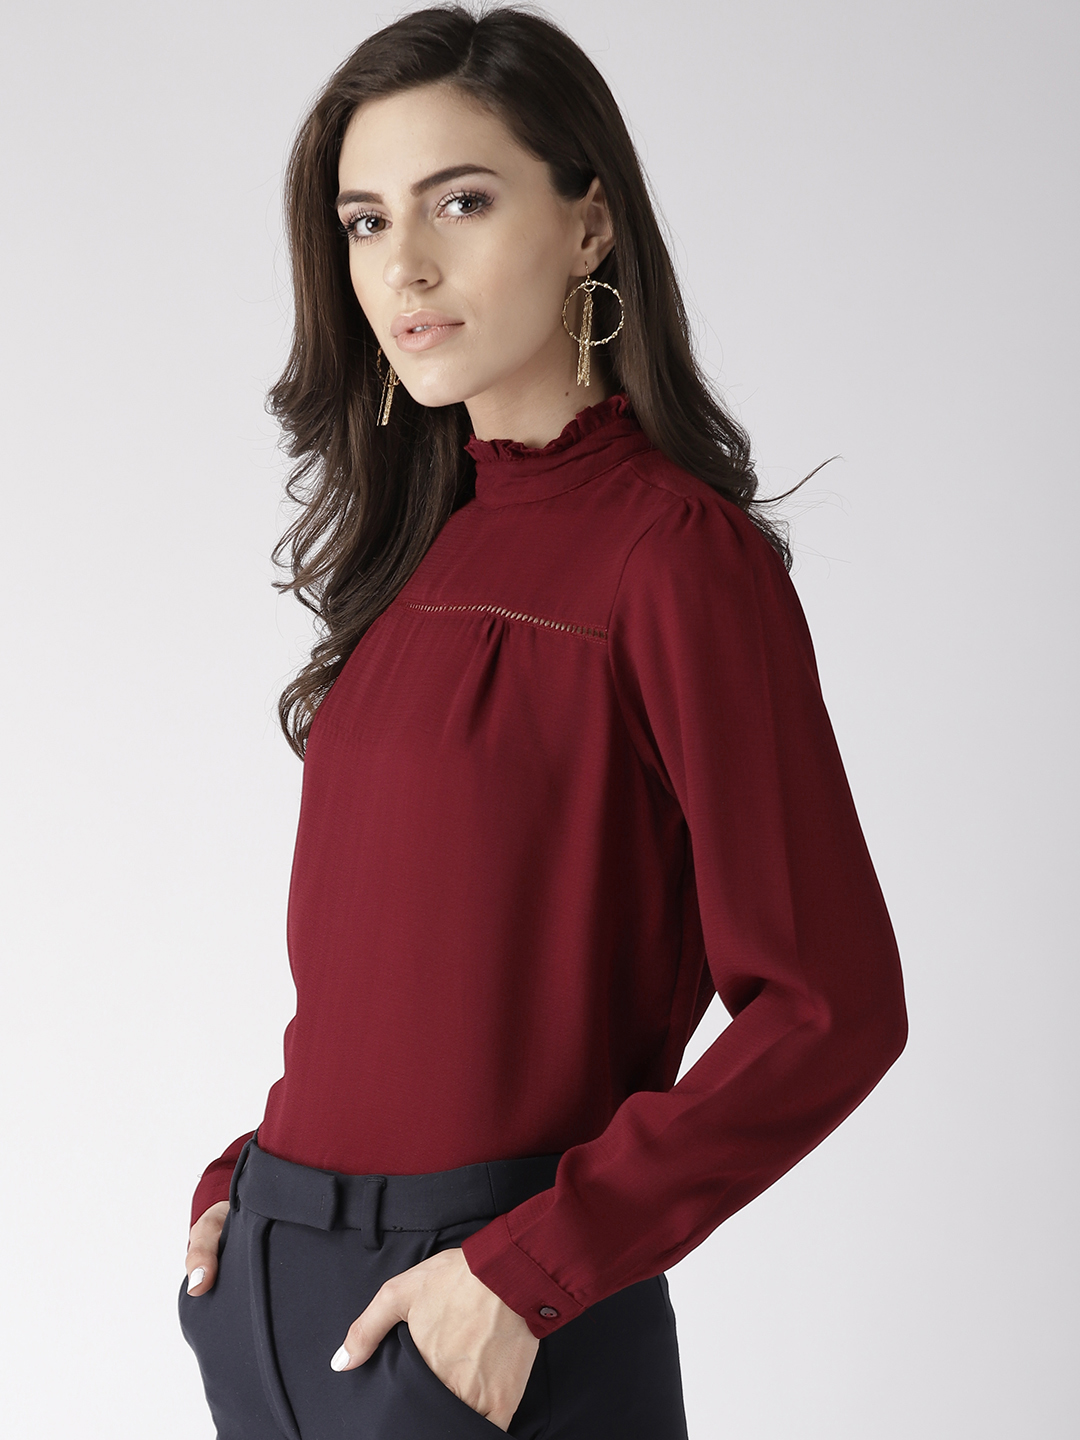 Tops-The New Look Maroon Top2